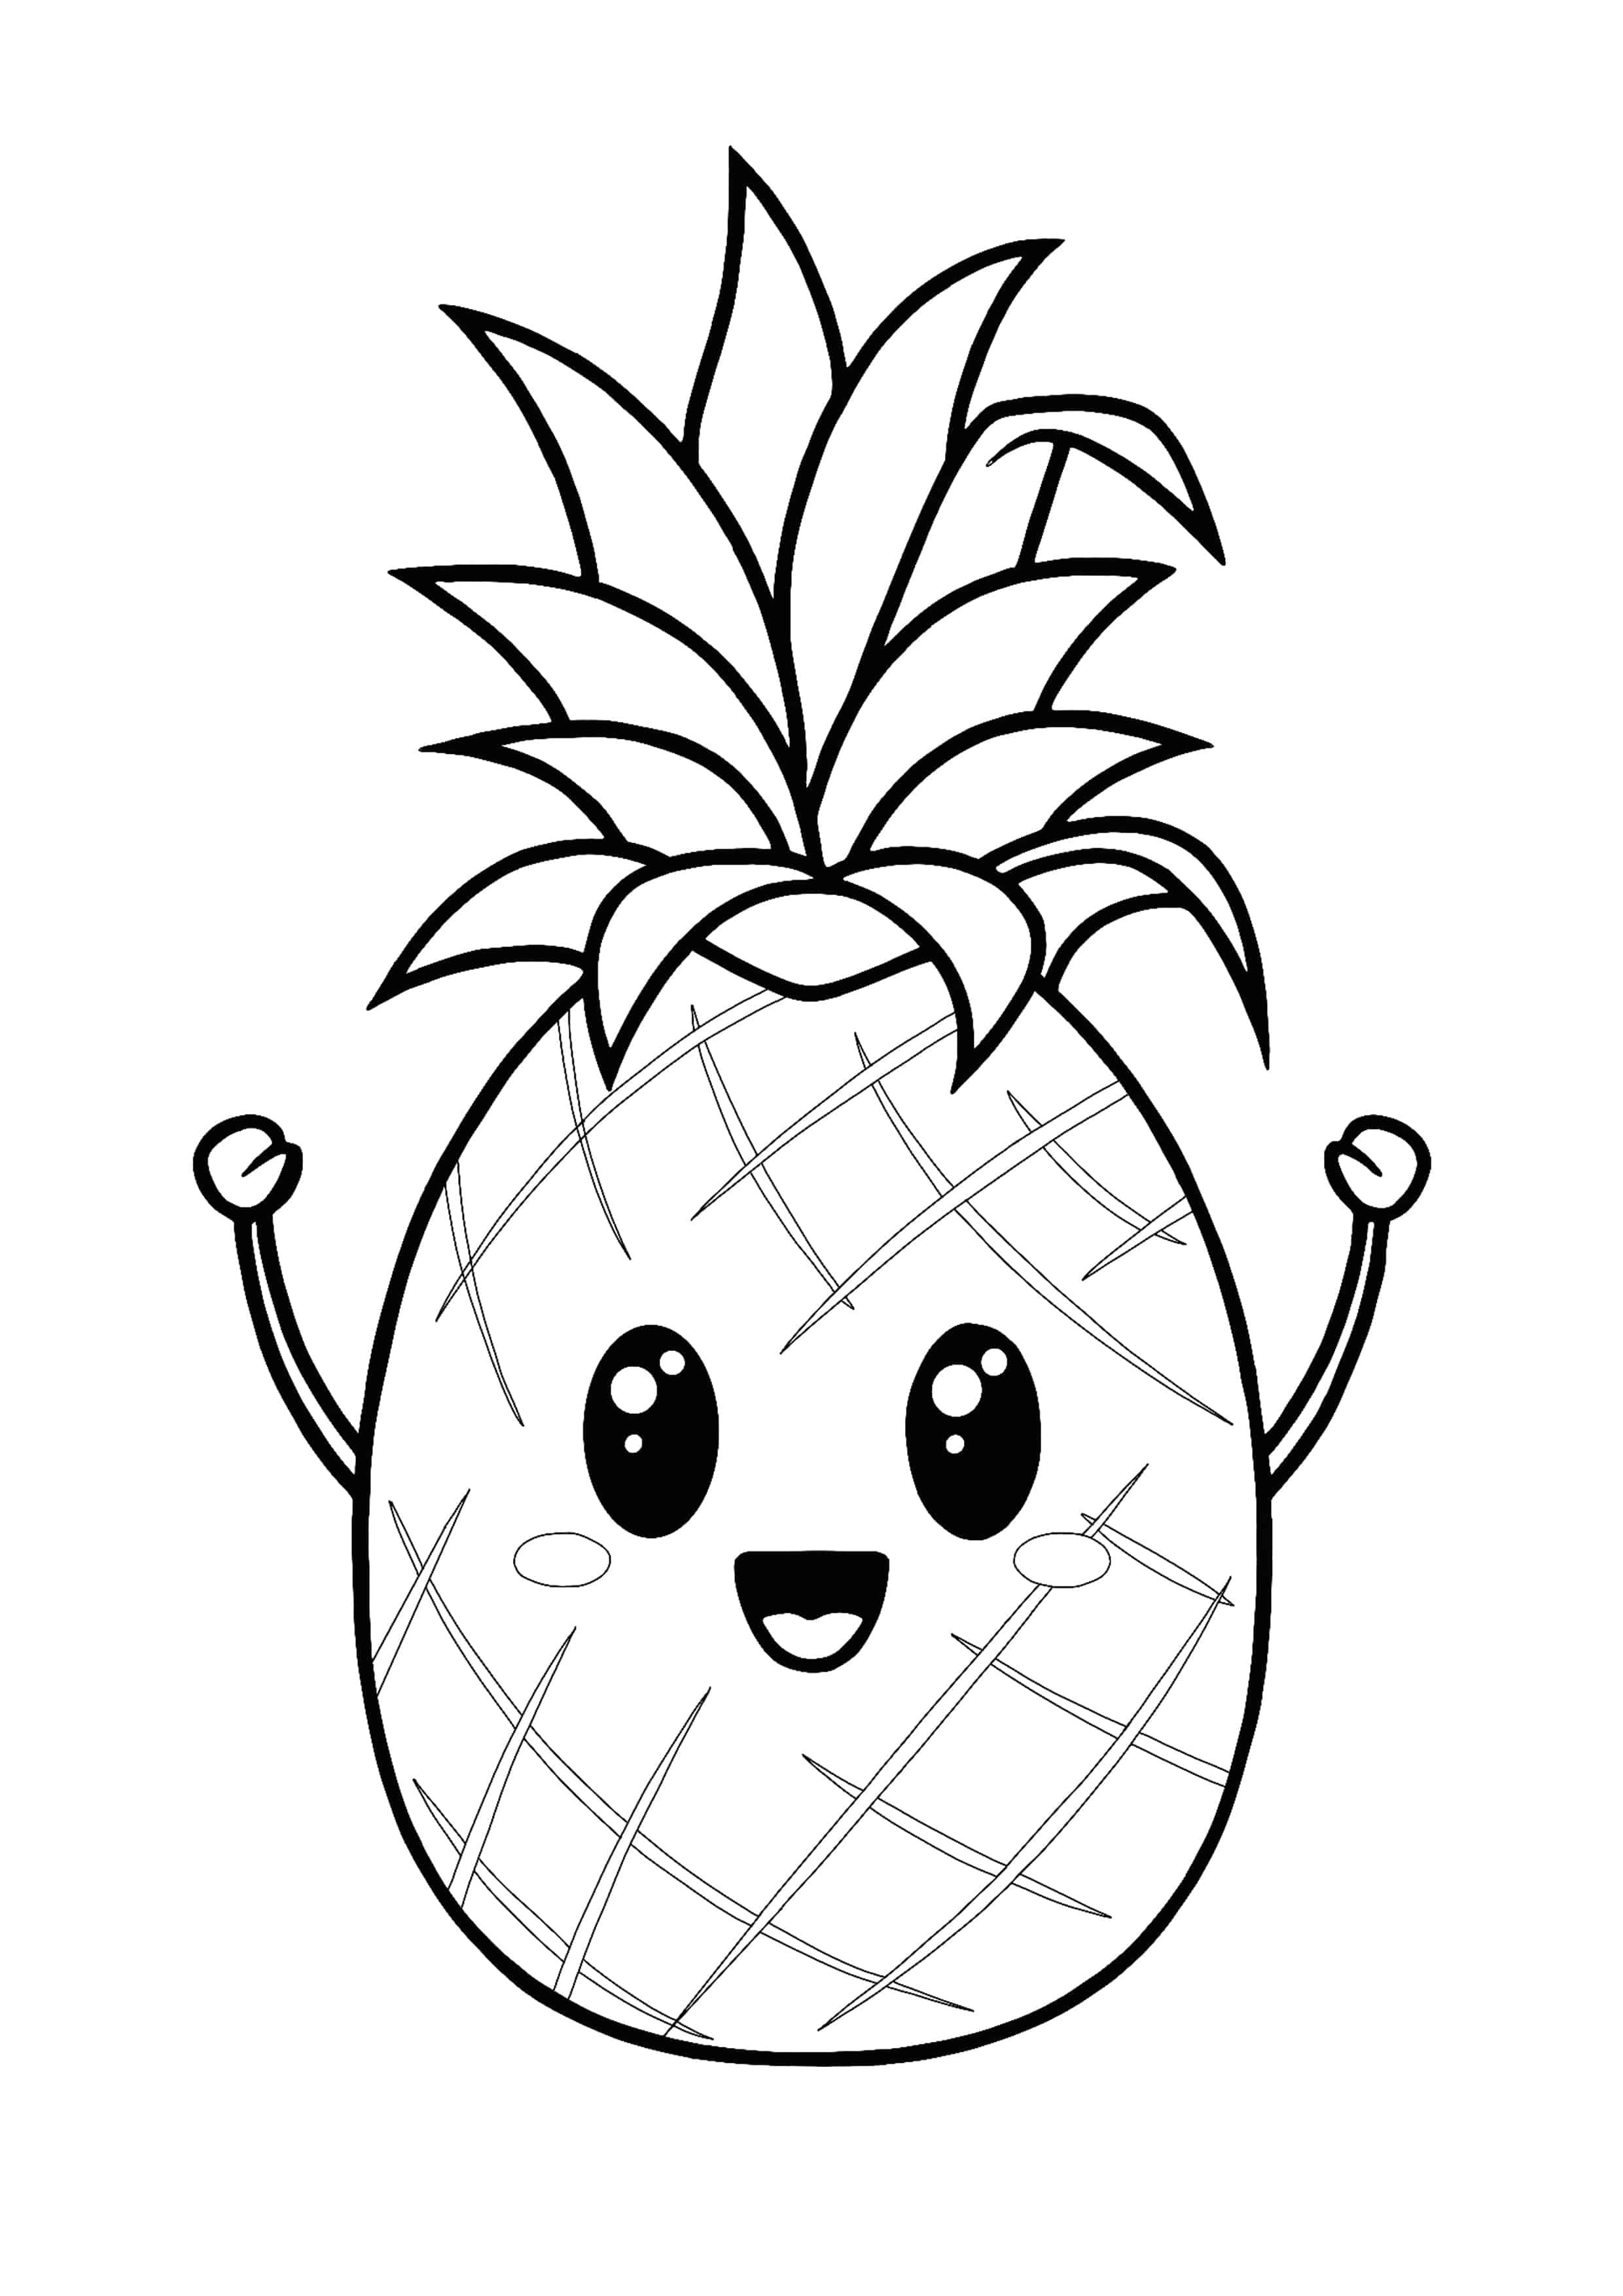 Cute Kawaii Pineapple Coloring Page In 2020 Kawaii Pineapple Coloring Pages Free Printable Coloring Pages